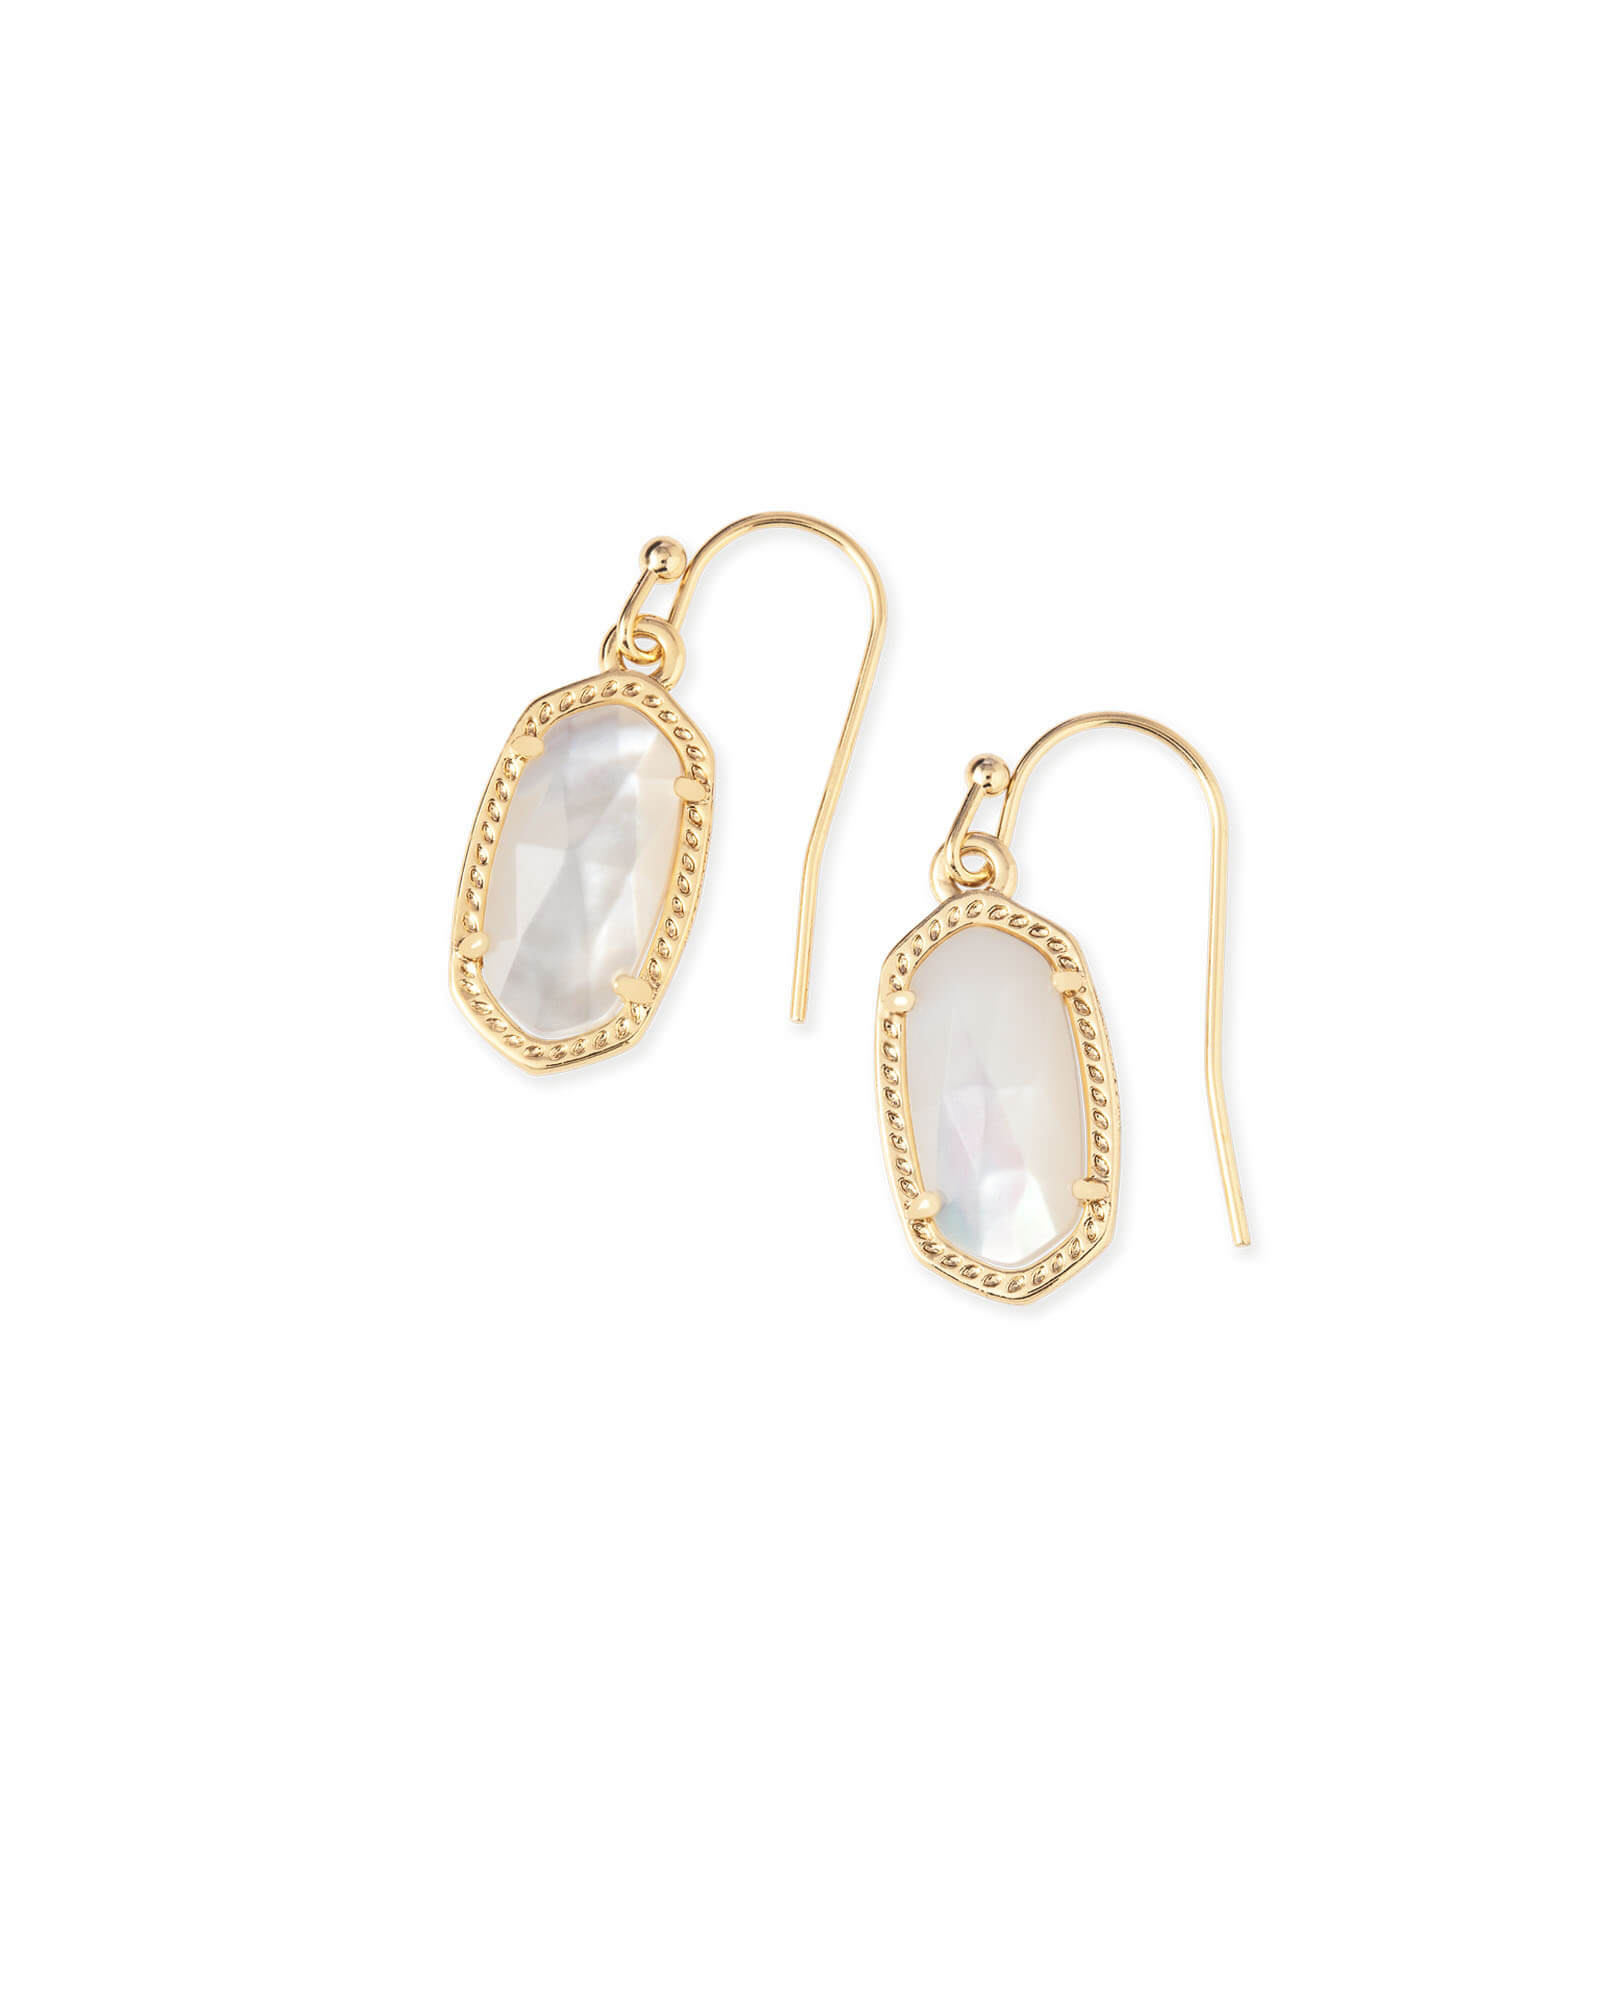 Lee Gold Drop Earrings in Ivory Pearl